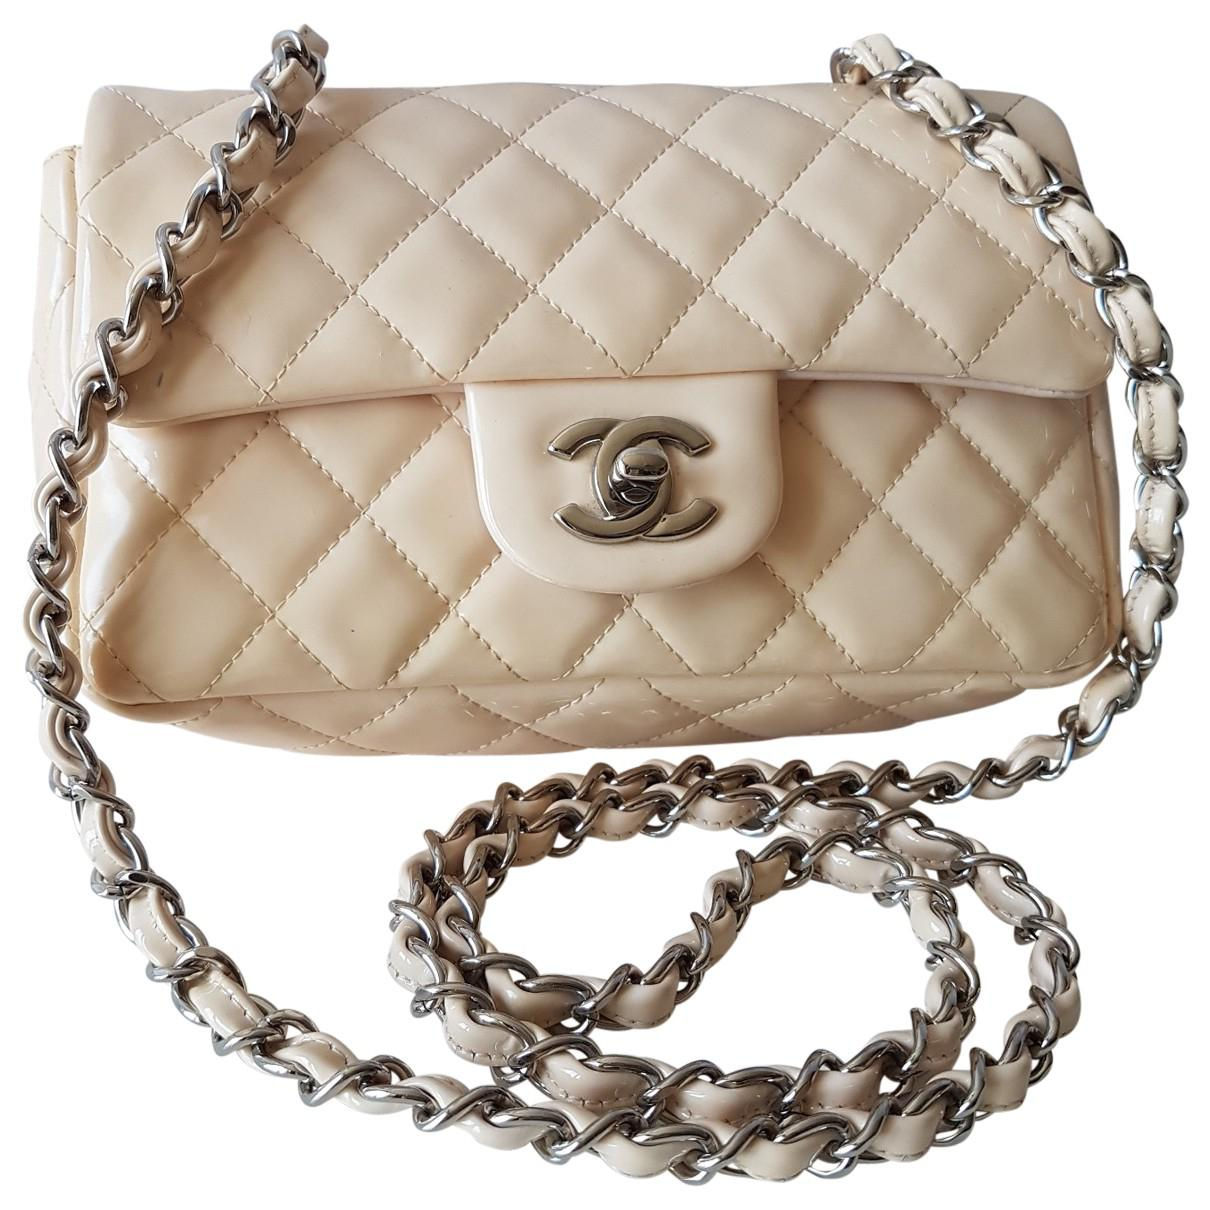 52efc6ea154d23 Chanel. Women's Natural Pre-owned Timeless Patent Leather Crossbody Bag